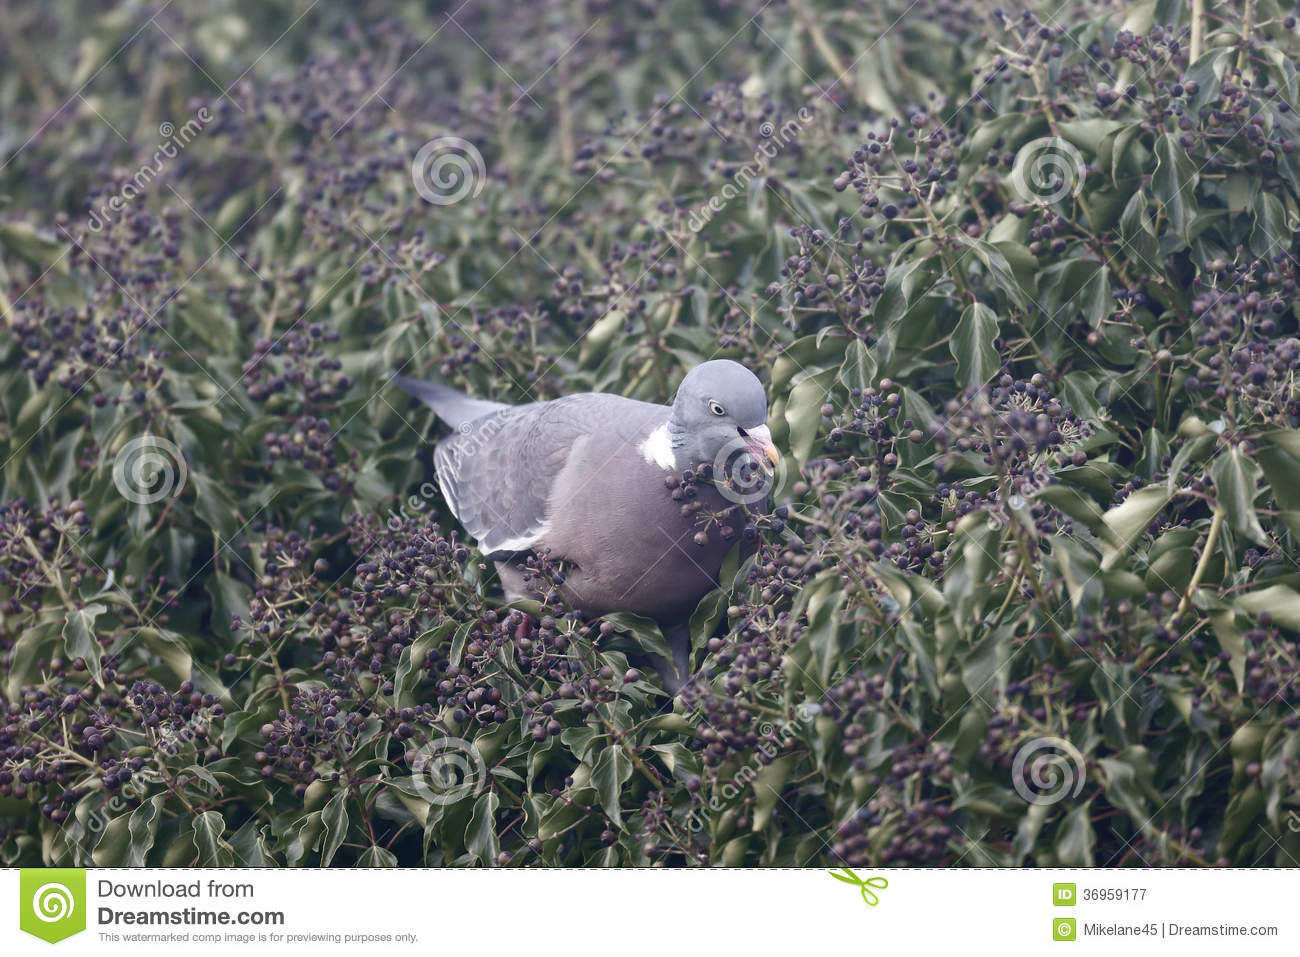 white pigeon divorced singles White pigeon dream  means at least a separation between them that can reach divorce because of infidelity of him or her dreaming of white doves flying.